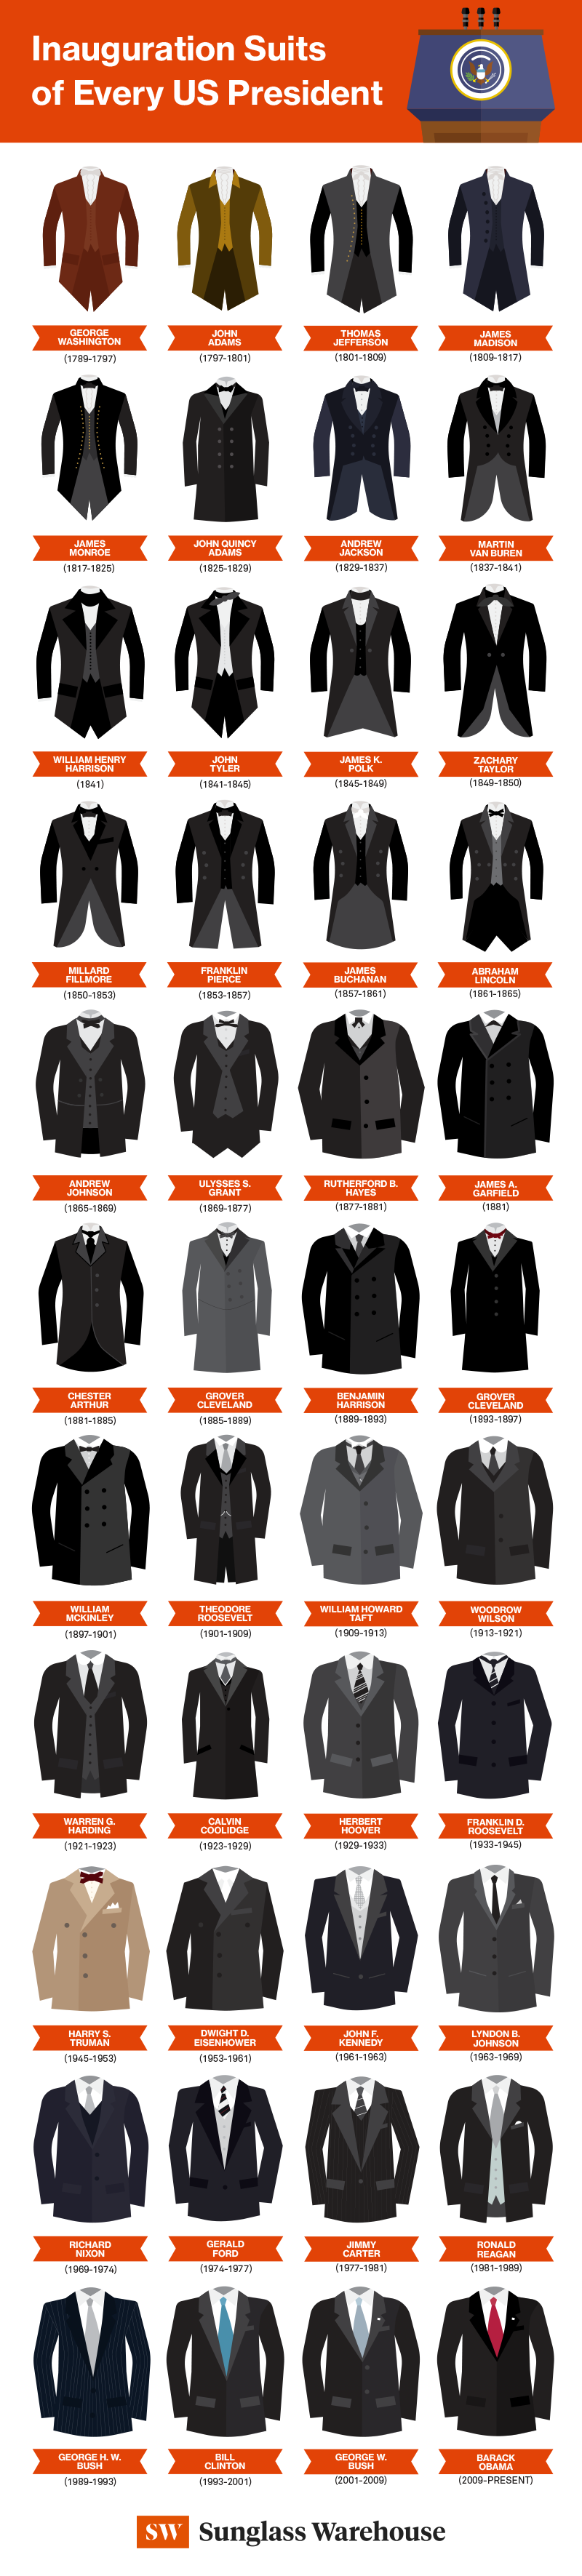 Every suit work by presidents at their inauguration